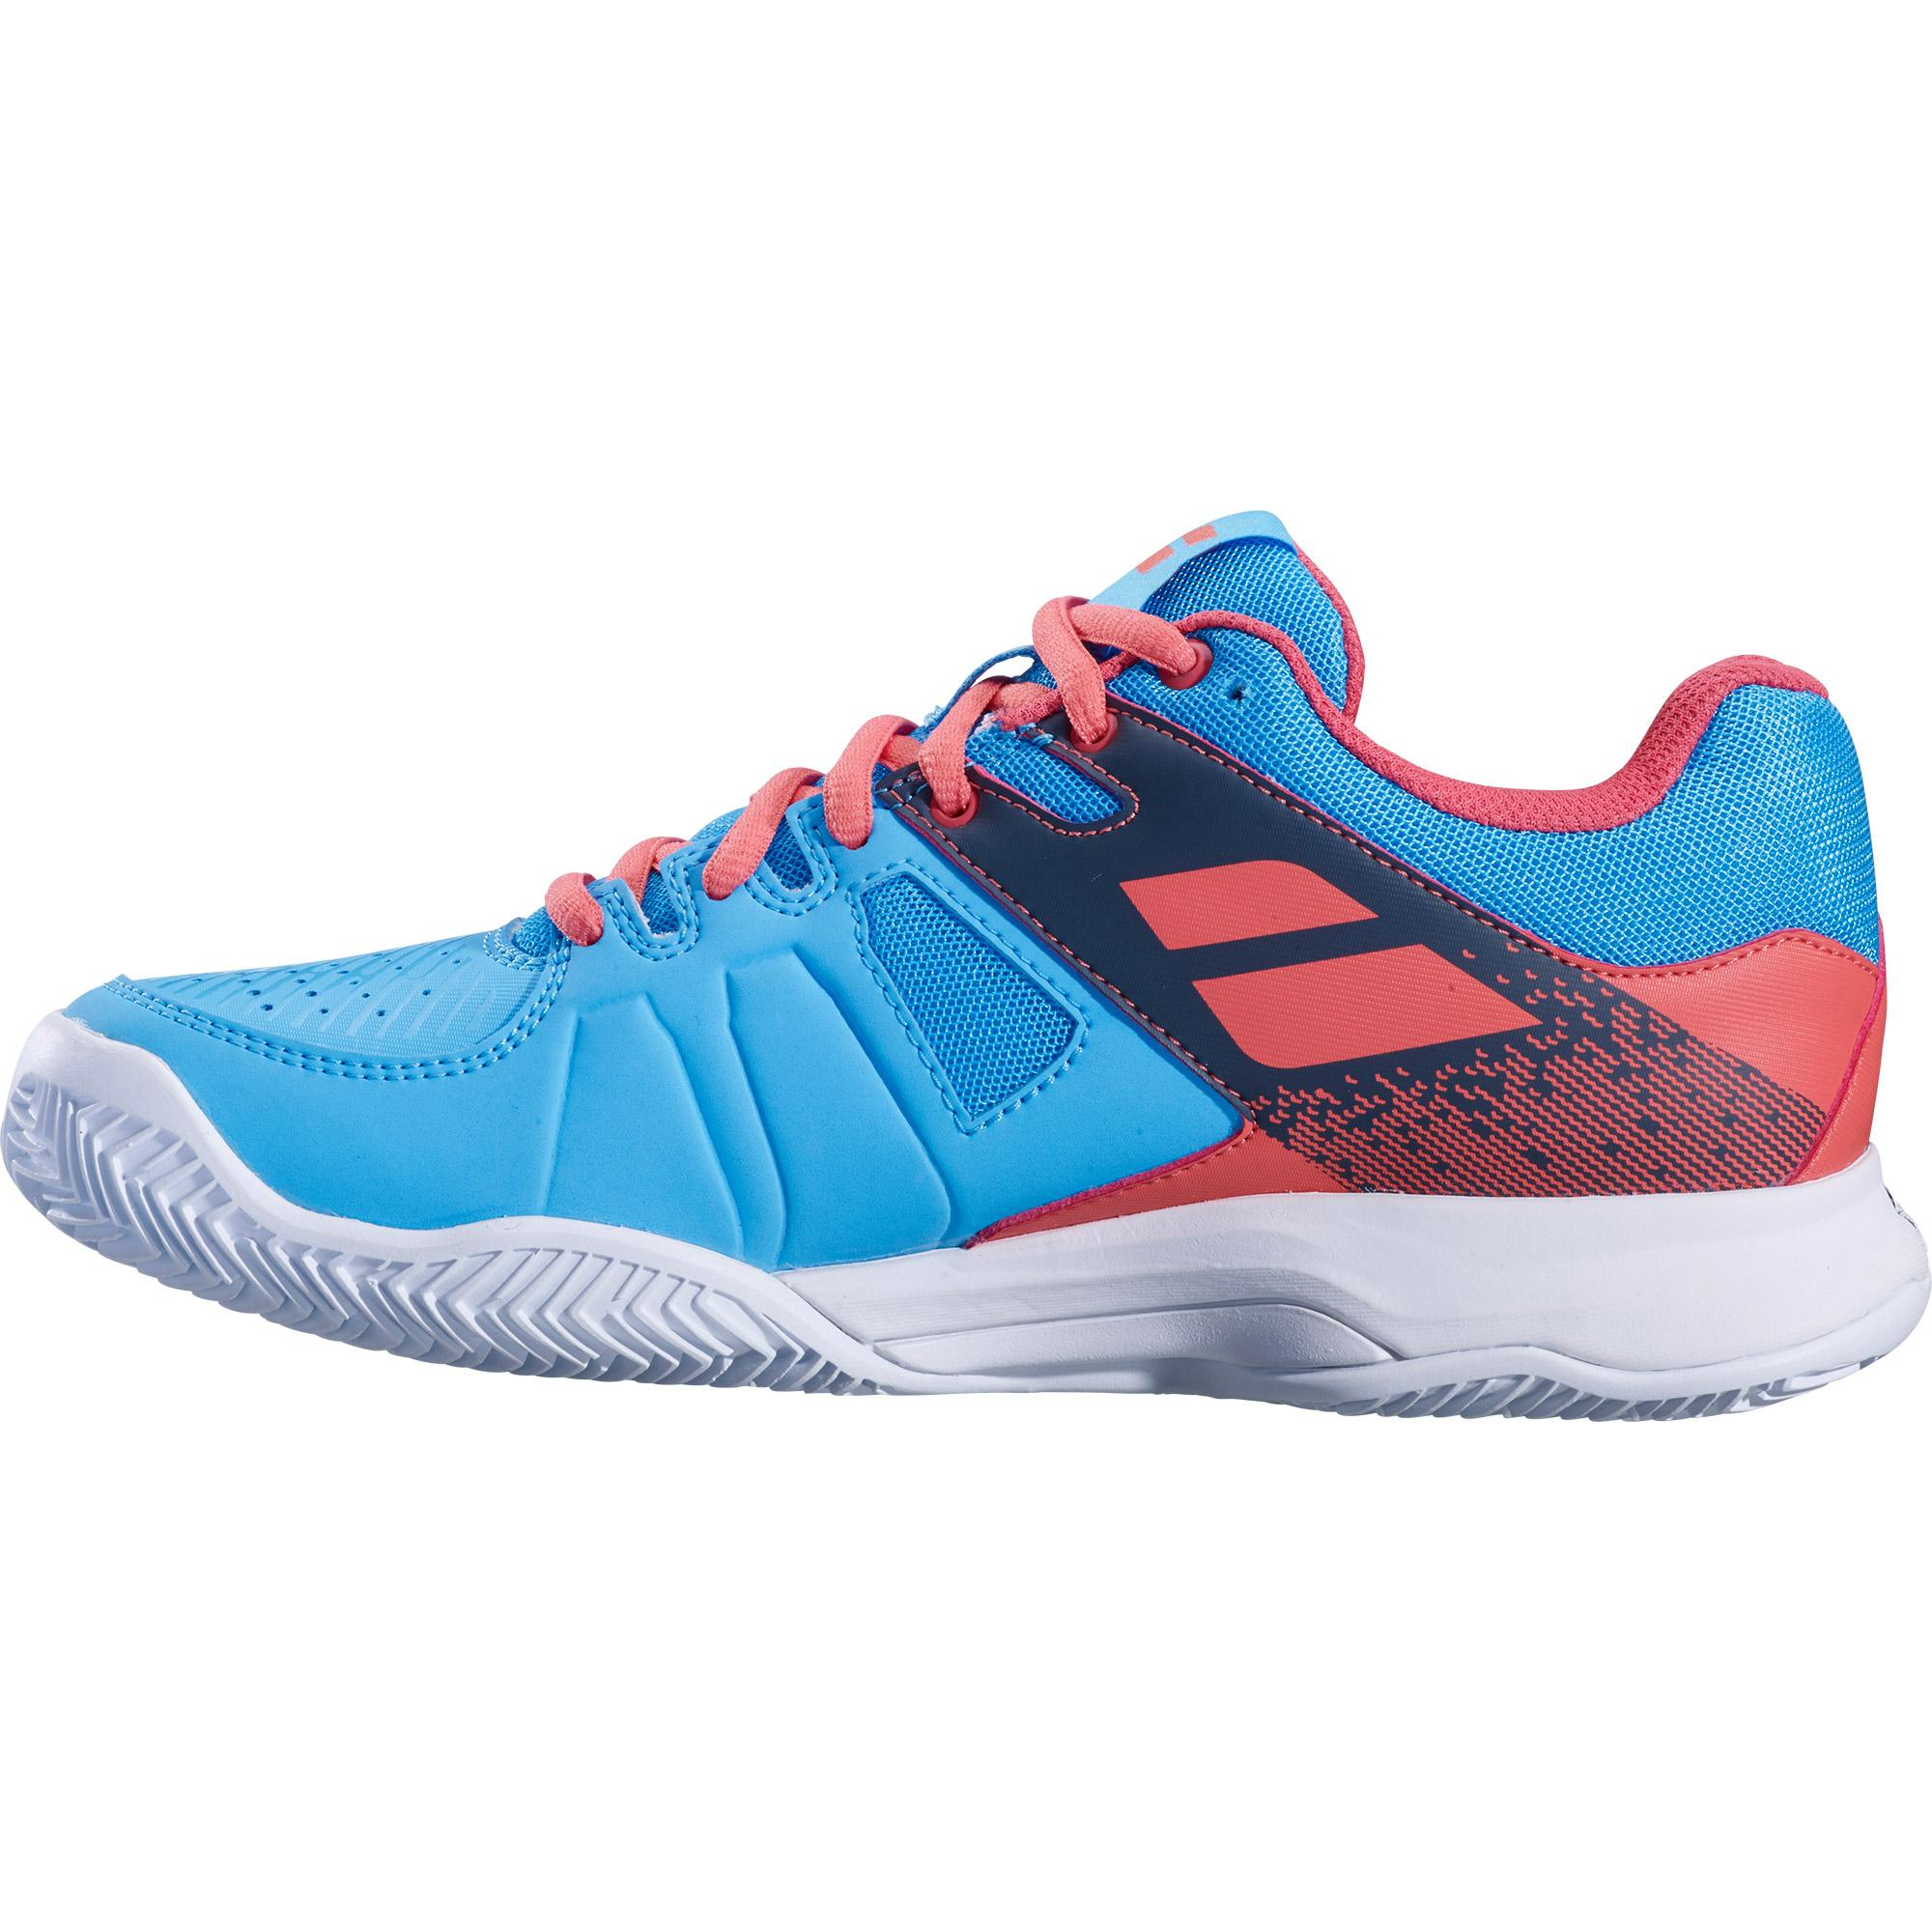 c9897cfeefbc Babolat Womens Pulsion Clay Court Tennis Shoes - Sky Blue Pink ...